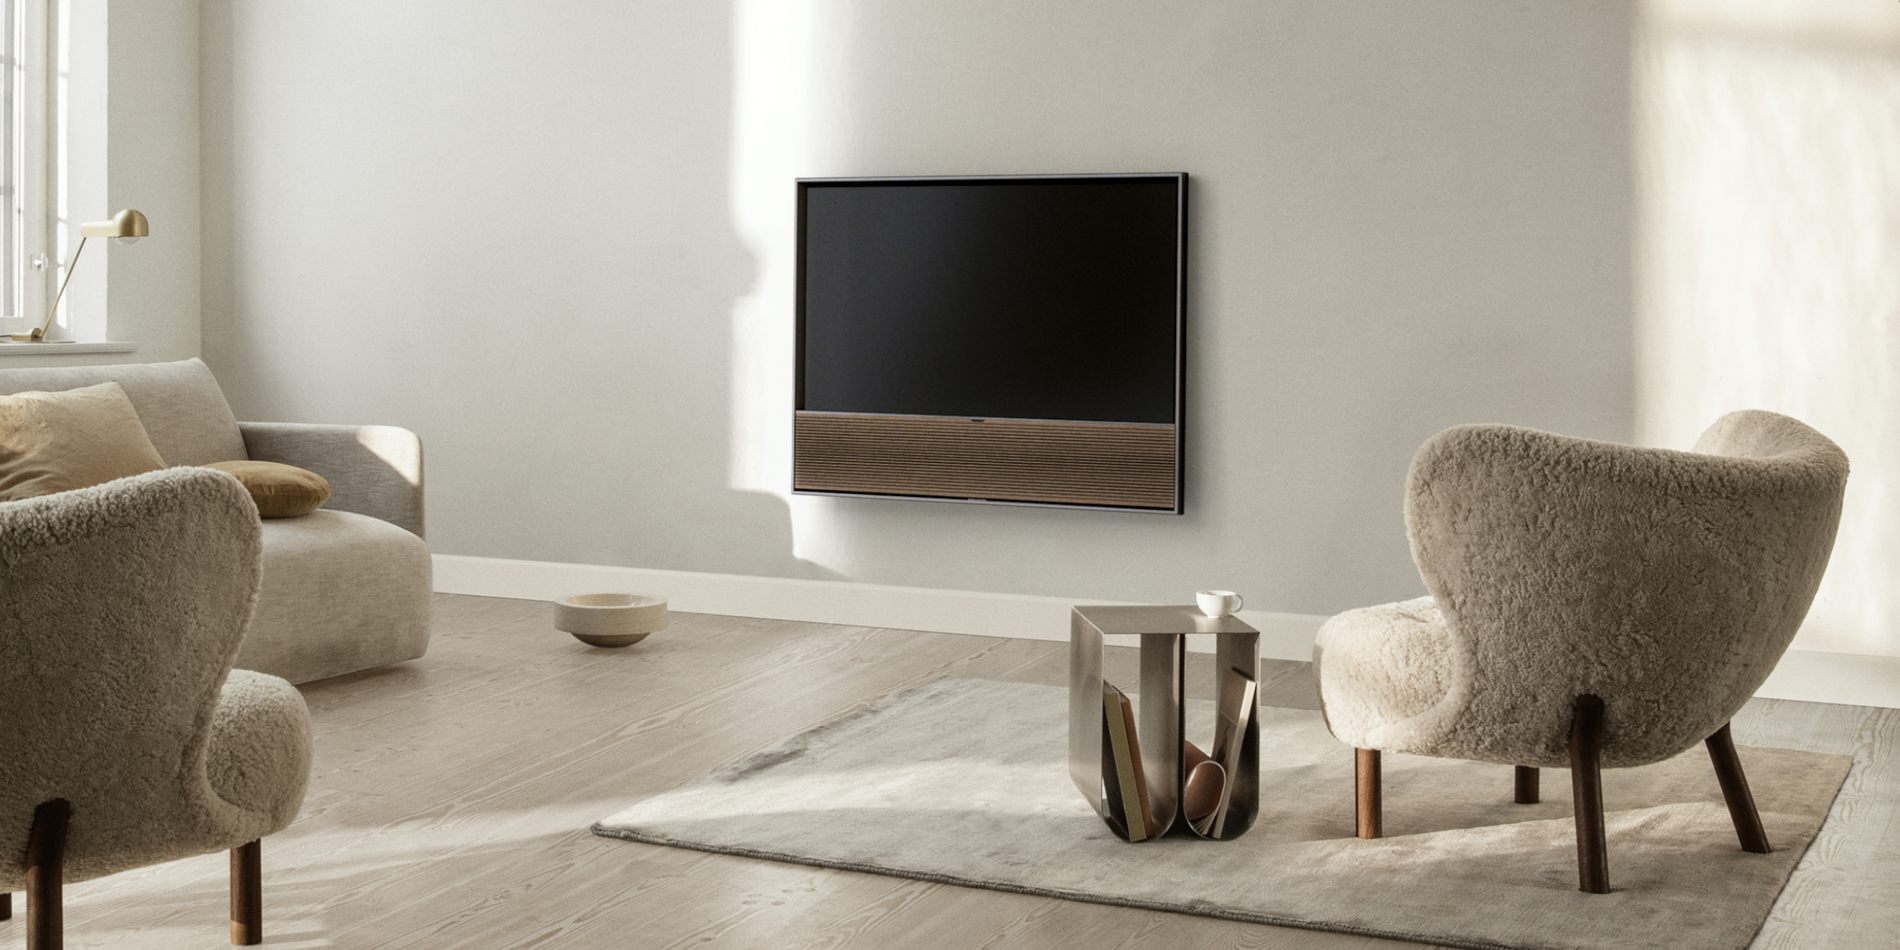 All-in-one OLED-Fernseher 48